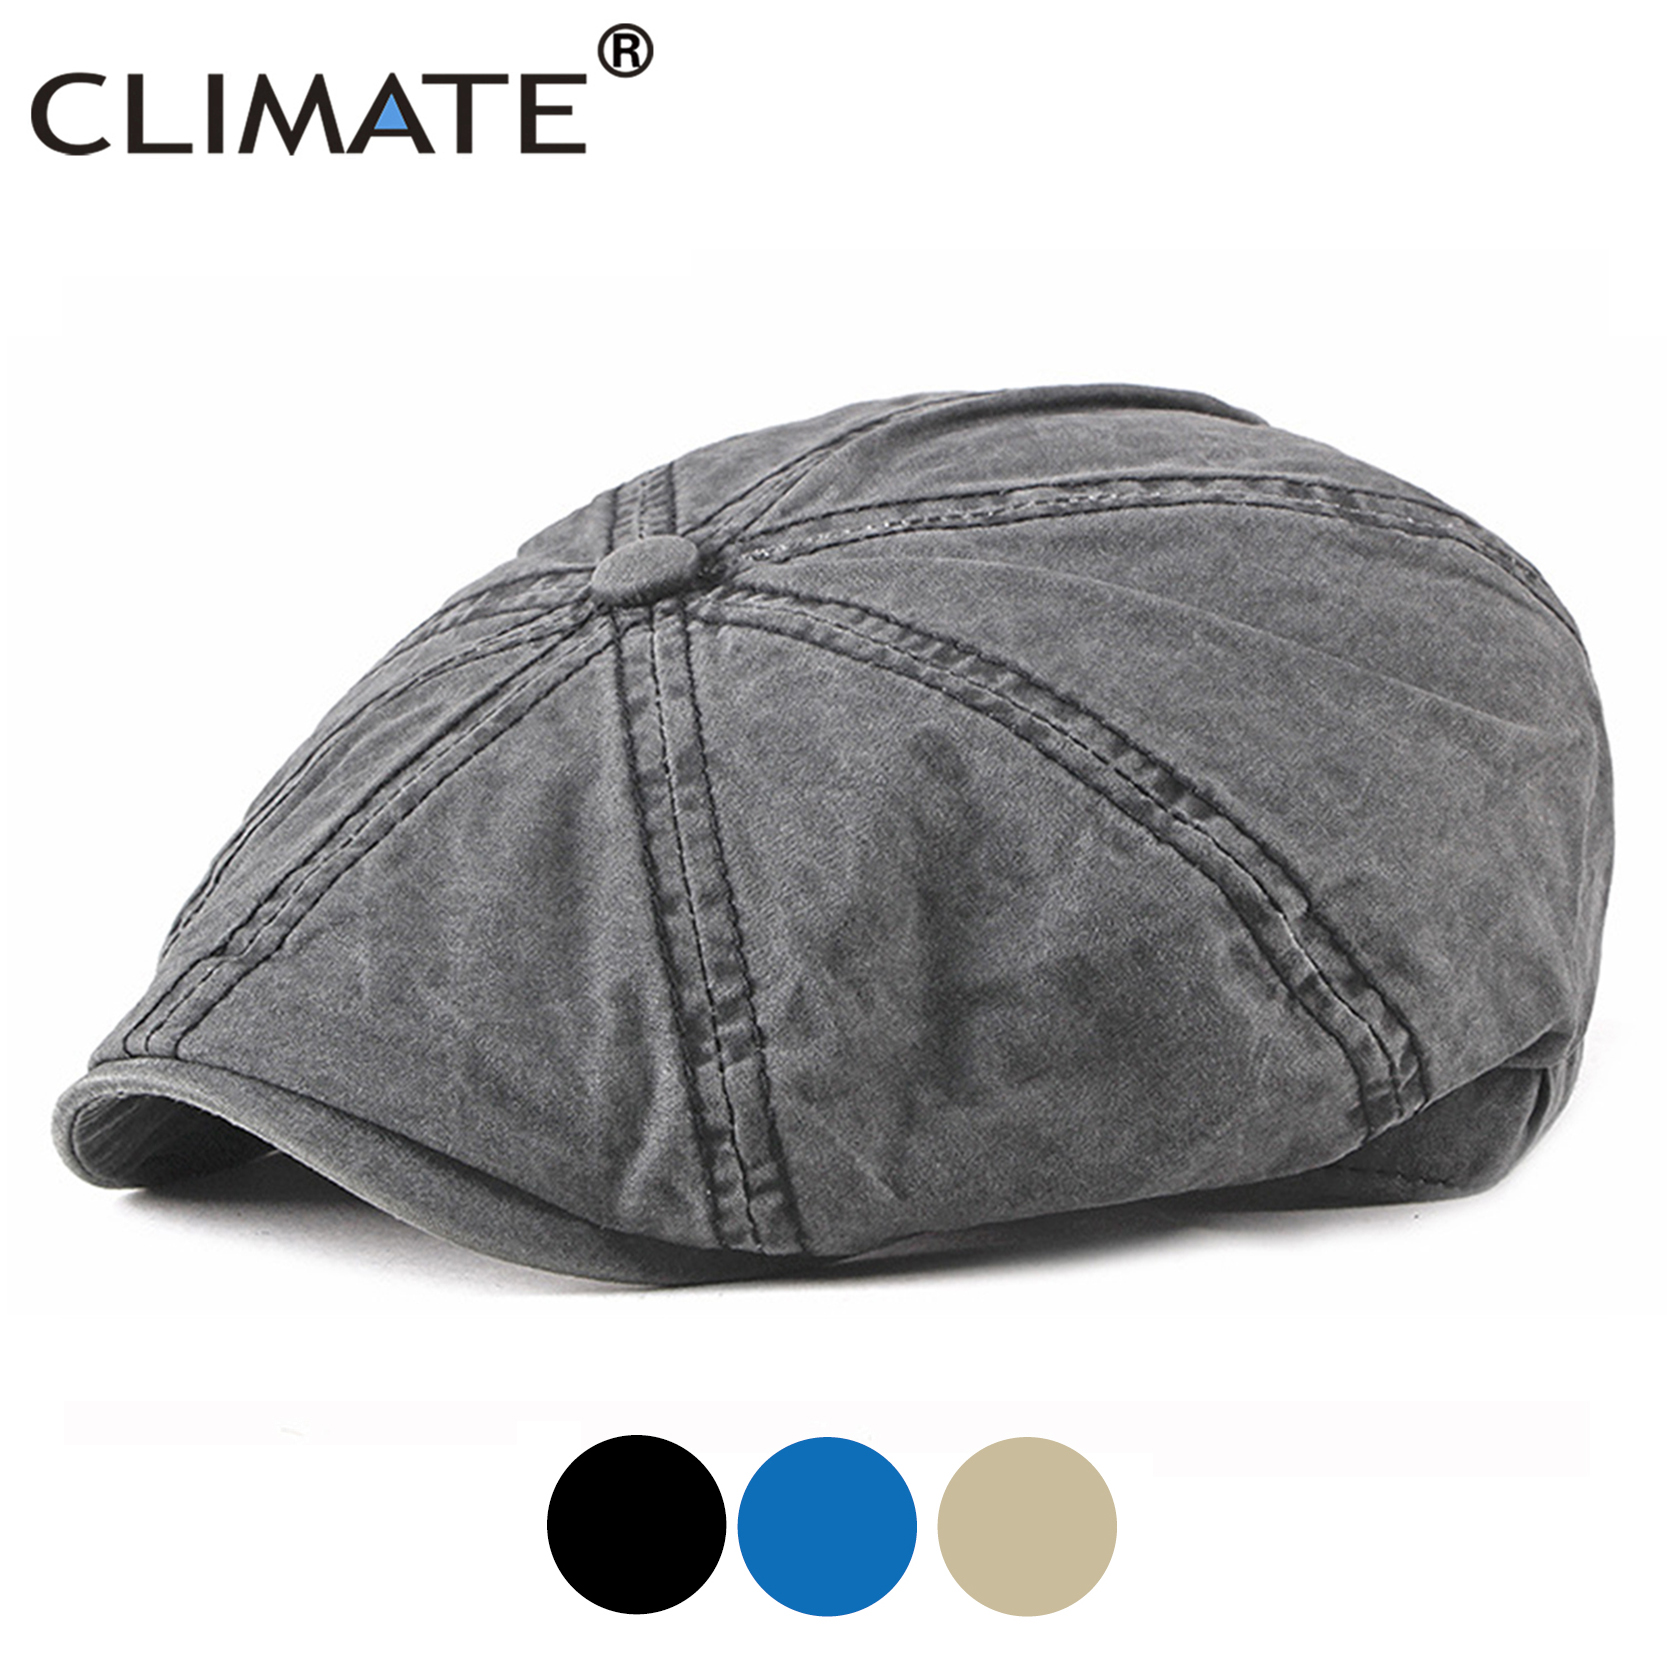 CLIMATE Super Plus Size Cap Hat Men Man Washed Newsboy Caps Black Cotton Solid Berets Caps Newsboy Cap Vintage Hat For Big Head